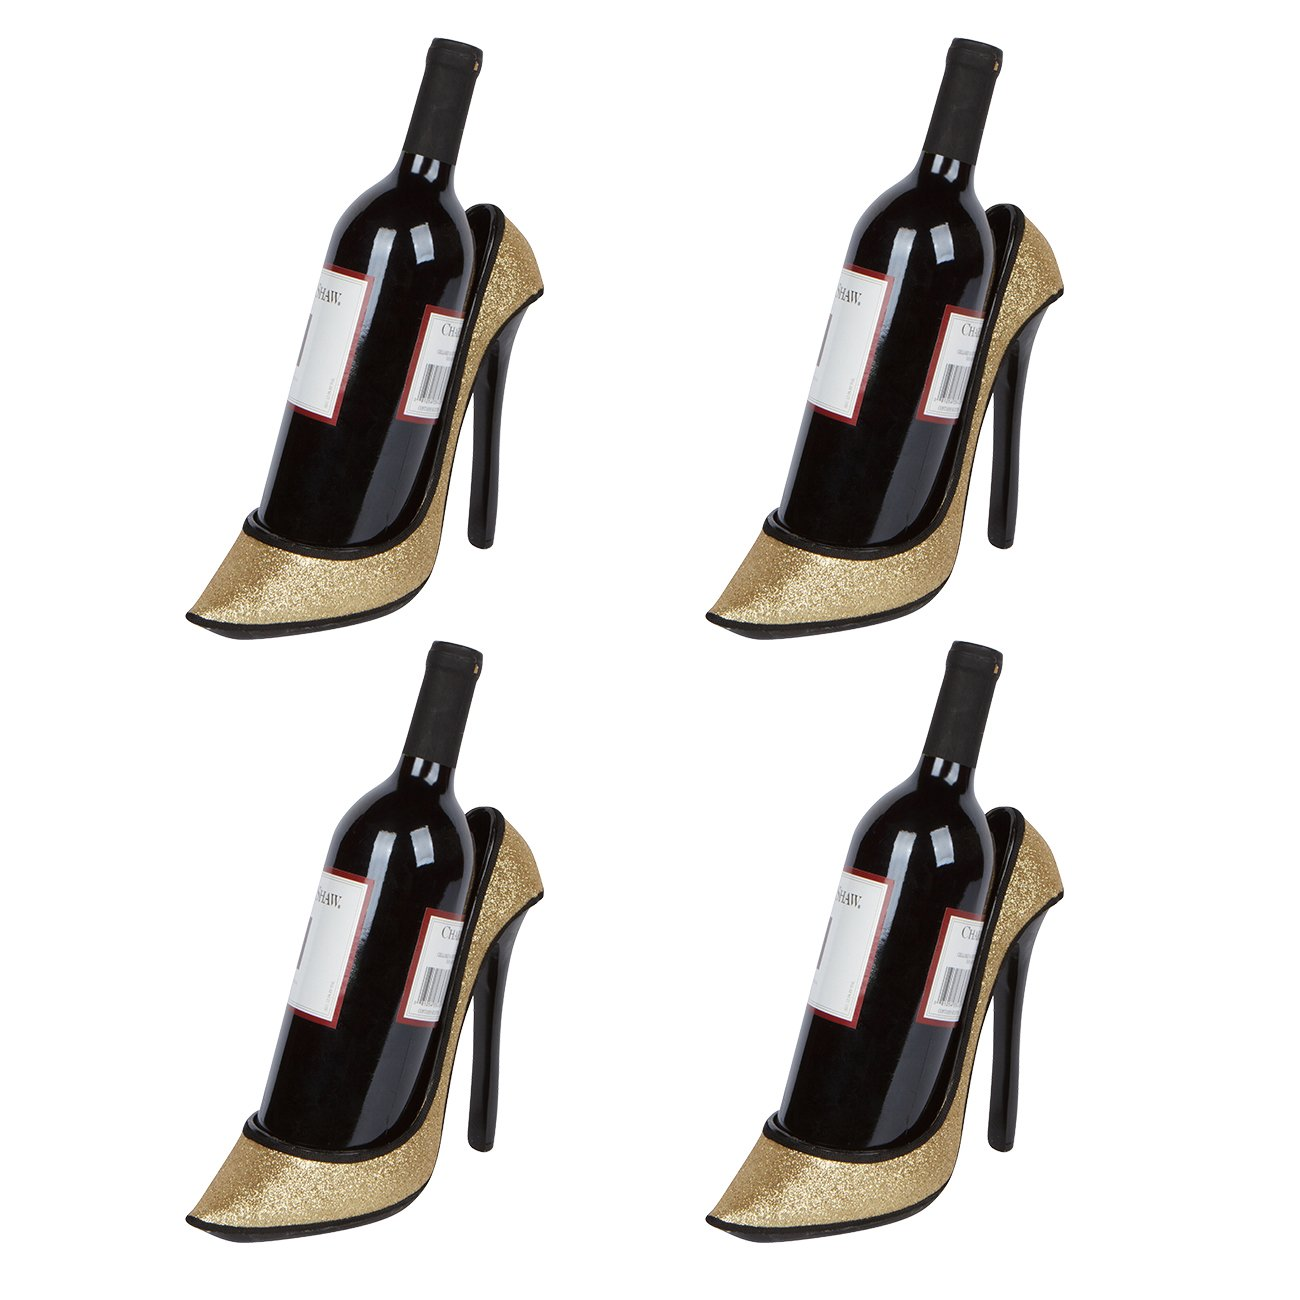 8.5'' x 7''H High Heel Wine Bottle Holder - Stylish Conversation Starter Wine Rack By Hilarious Home (Black Sequin, Set of 4) by Hilarious Home